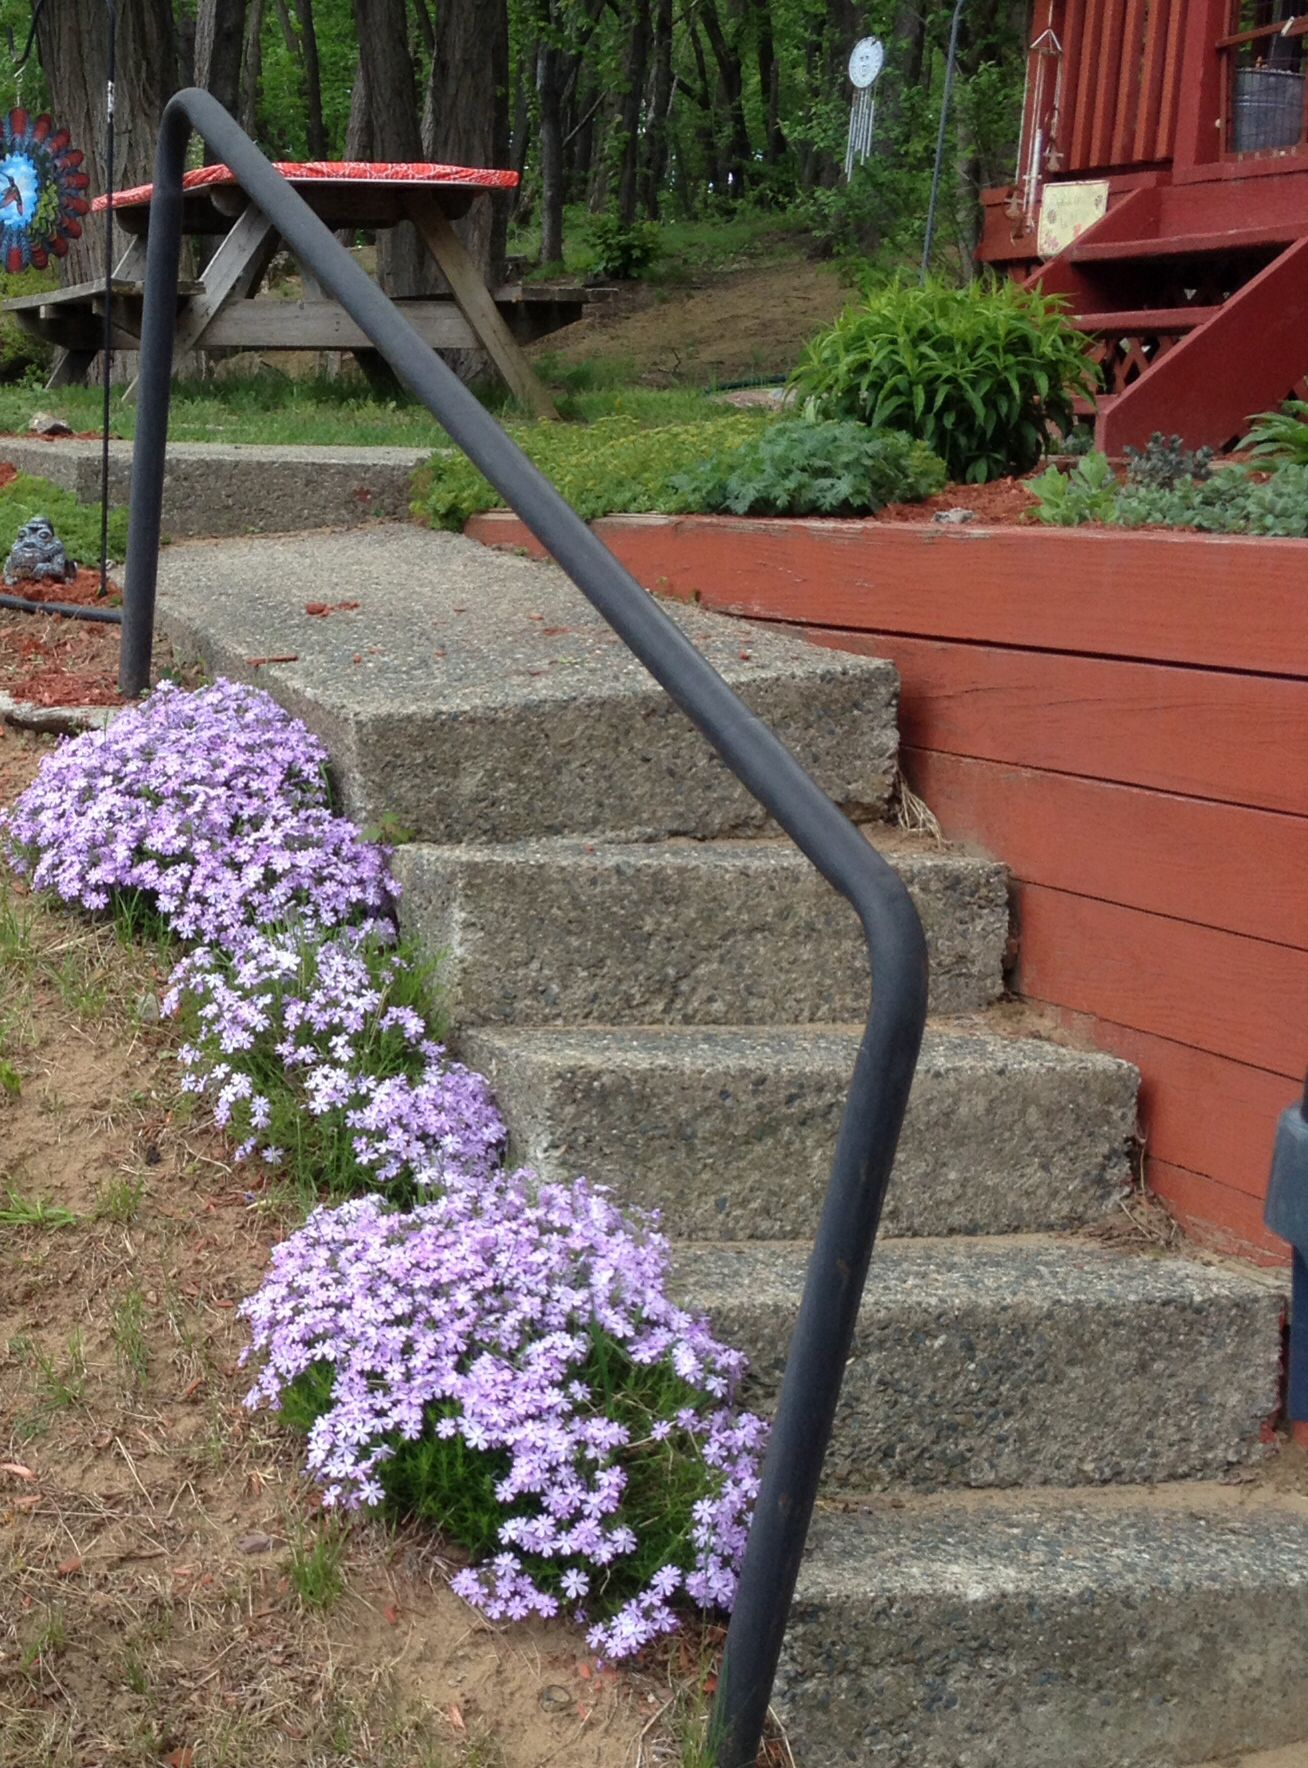 Phlox going up stairs (that need fixing)